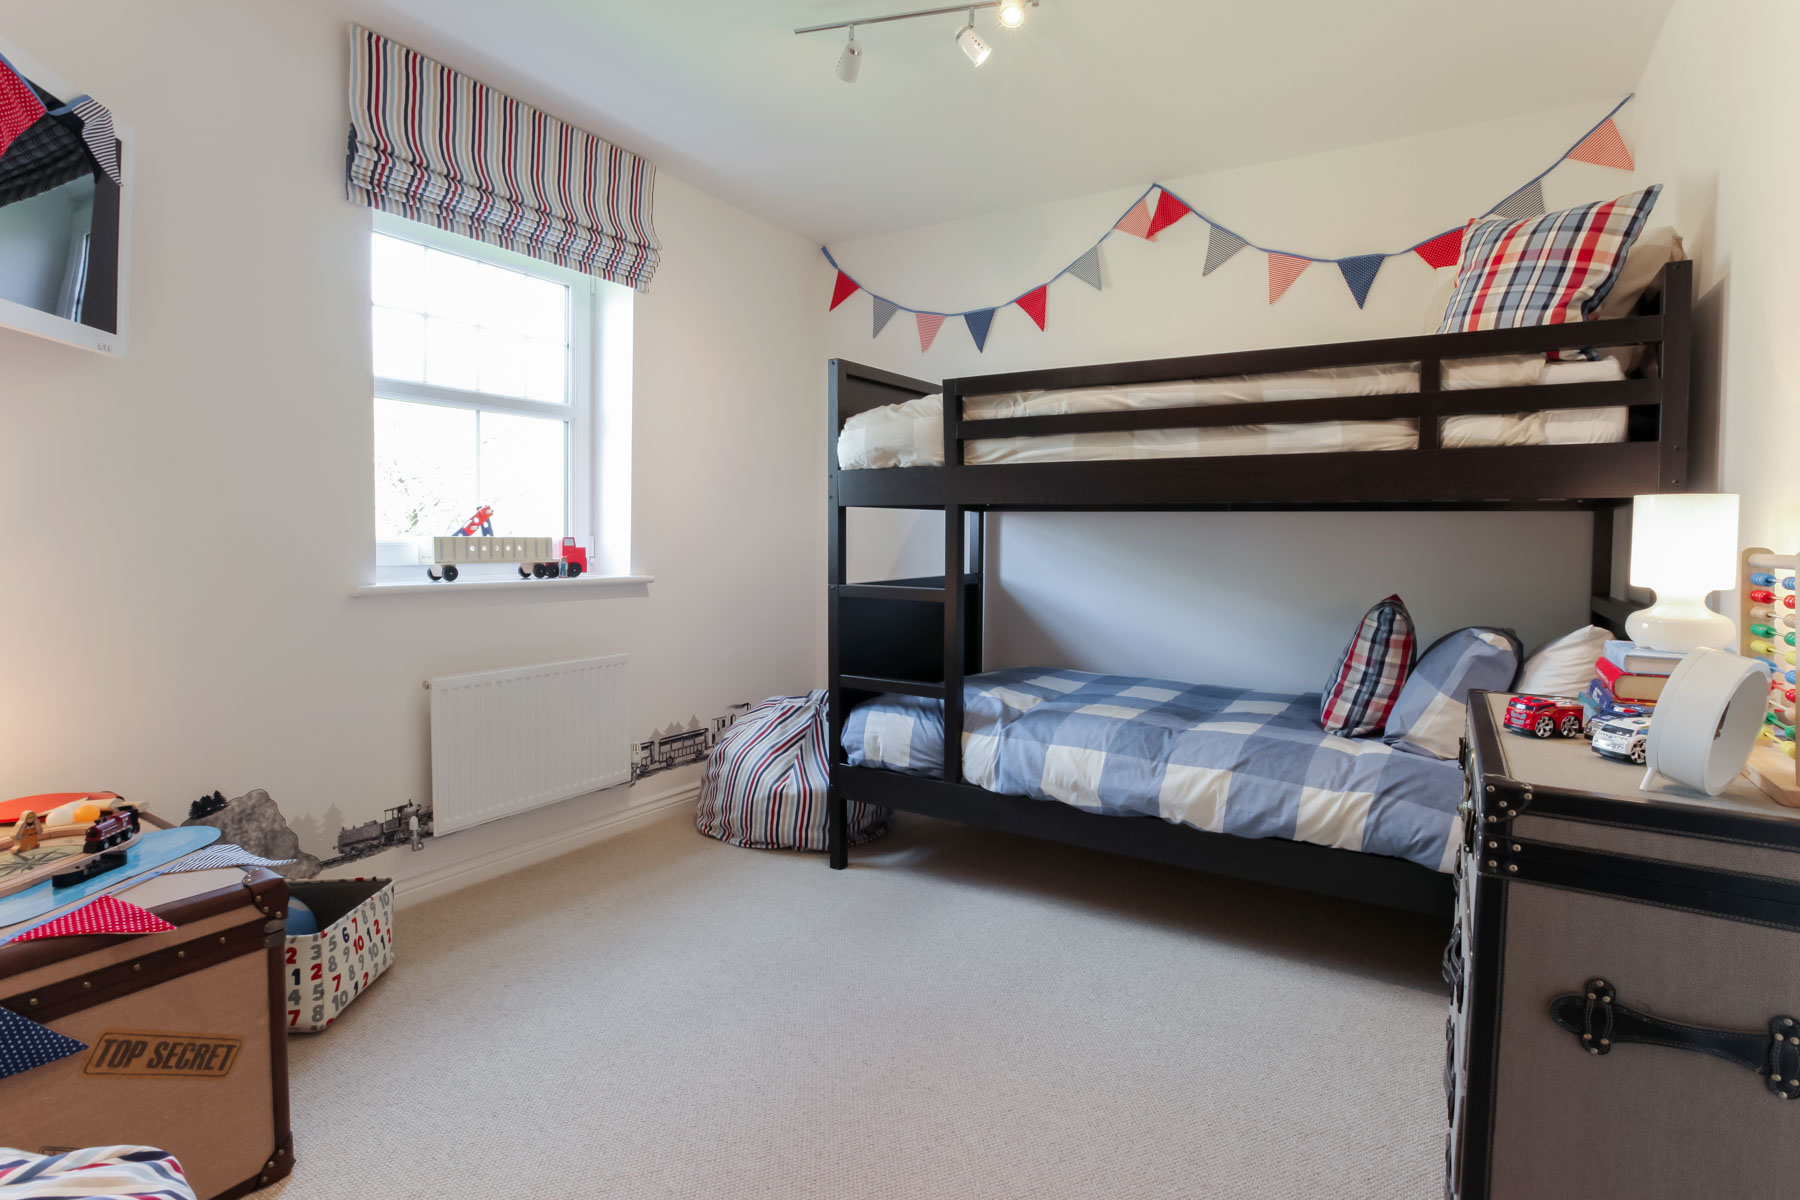 020_PG_Chelford_Bedroom_3